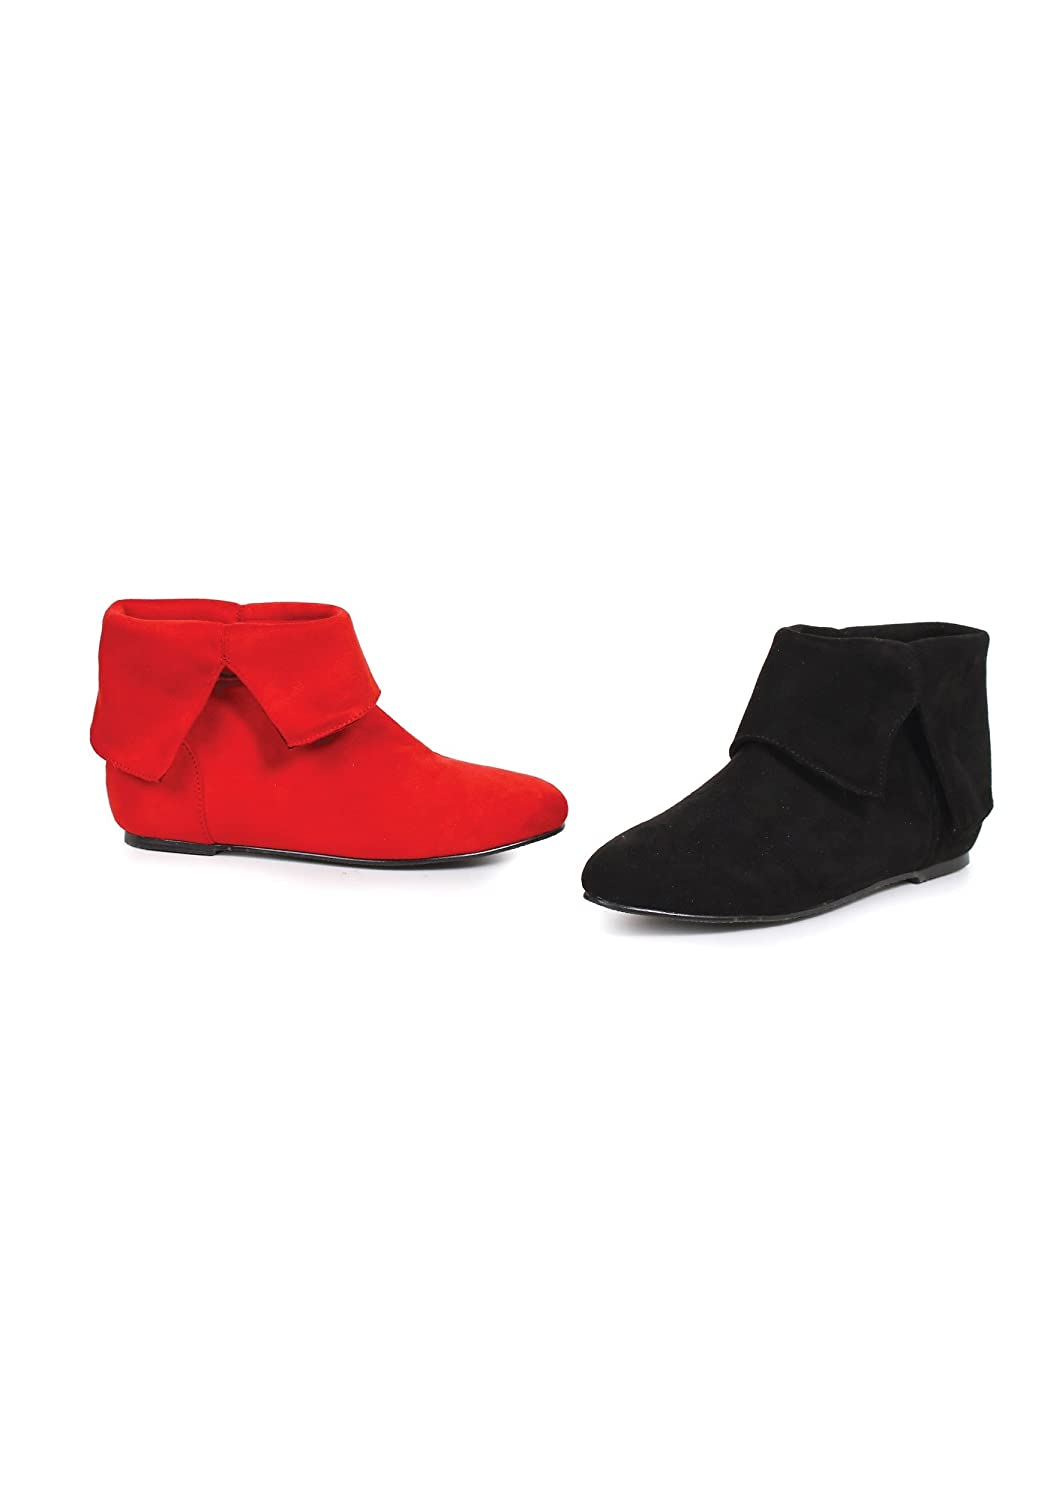 Red and Black Girls Harlequin Boots Large Ellie Shoes